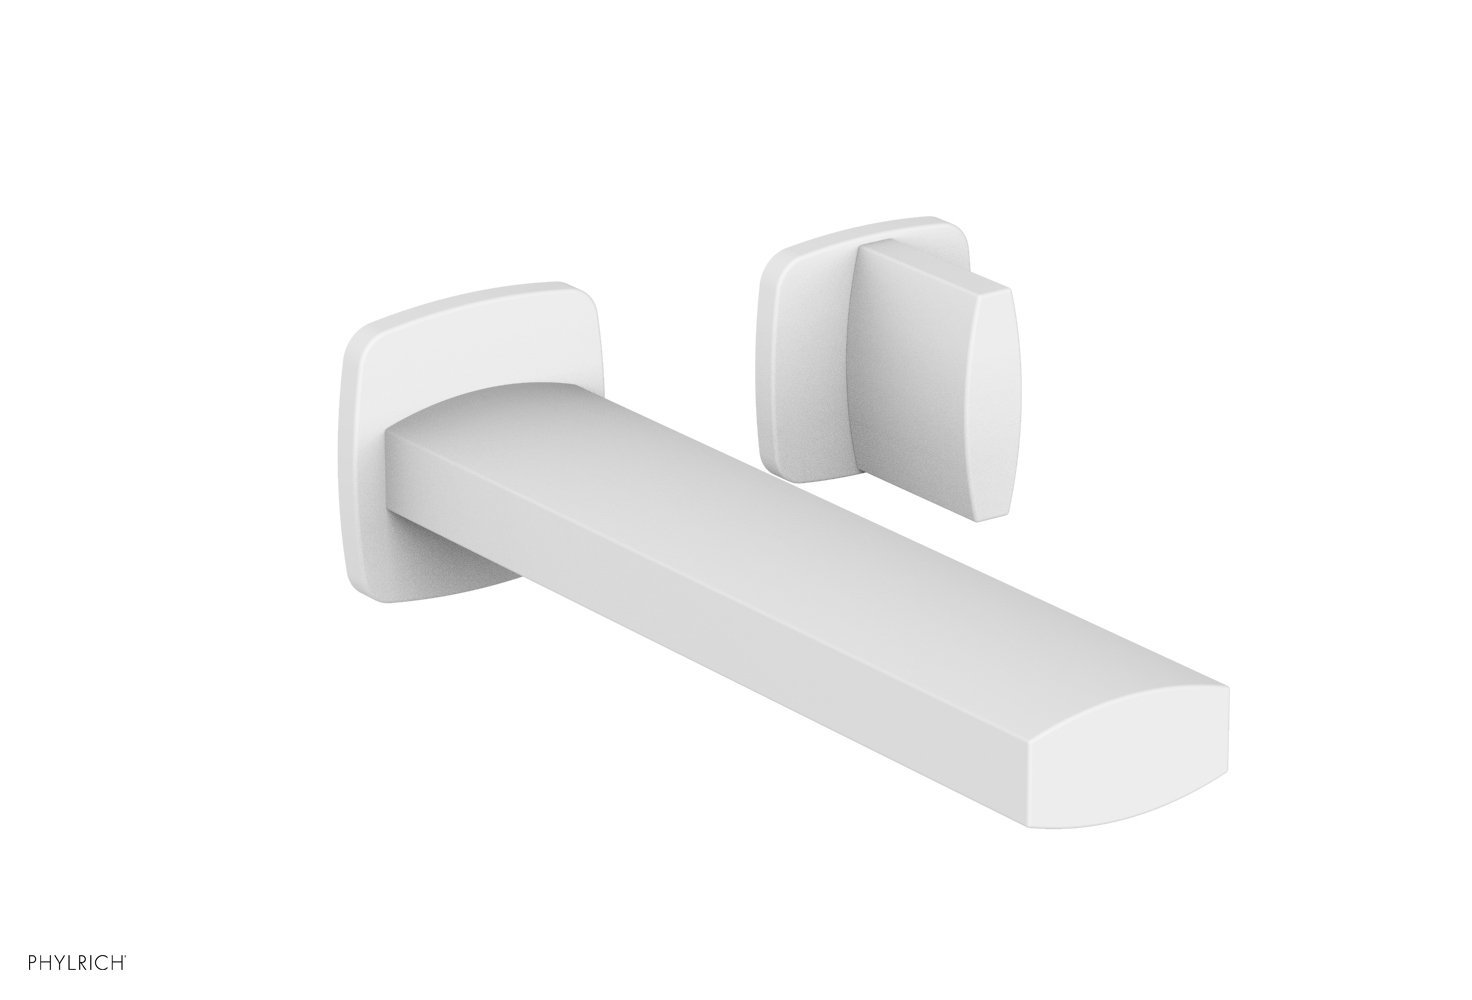 Phylrich 181-15-050 RADI Single Handle Wall Lavatory Set - Blade Handles - Satin White